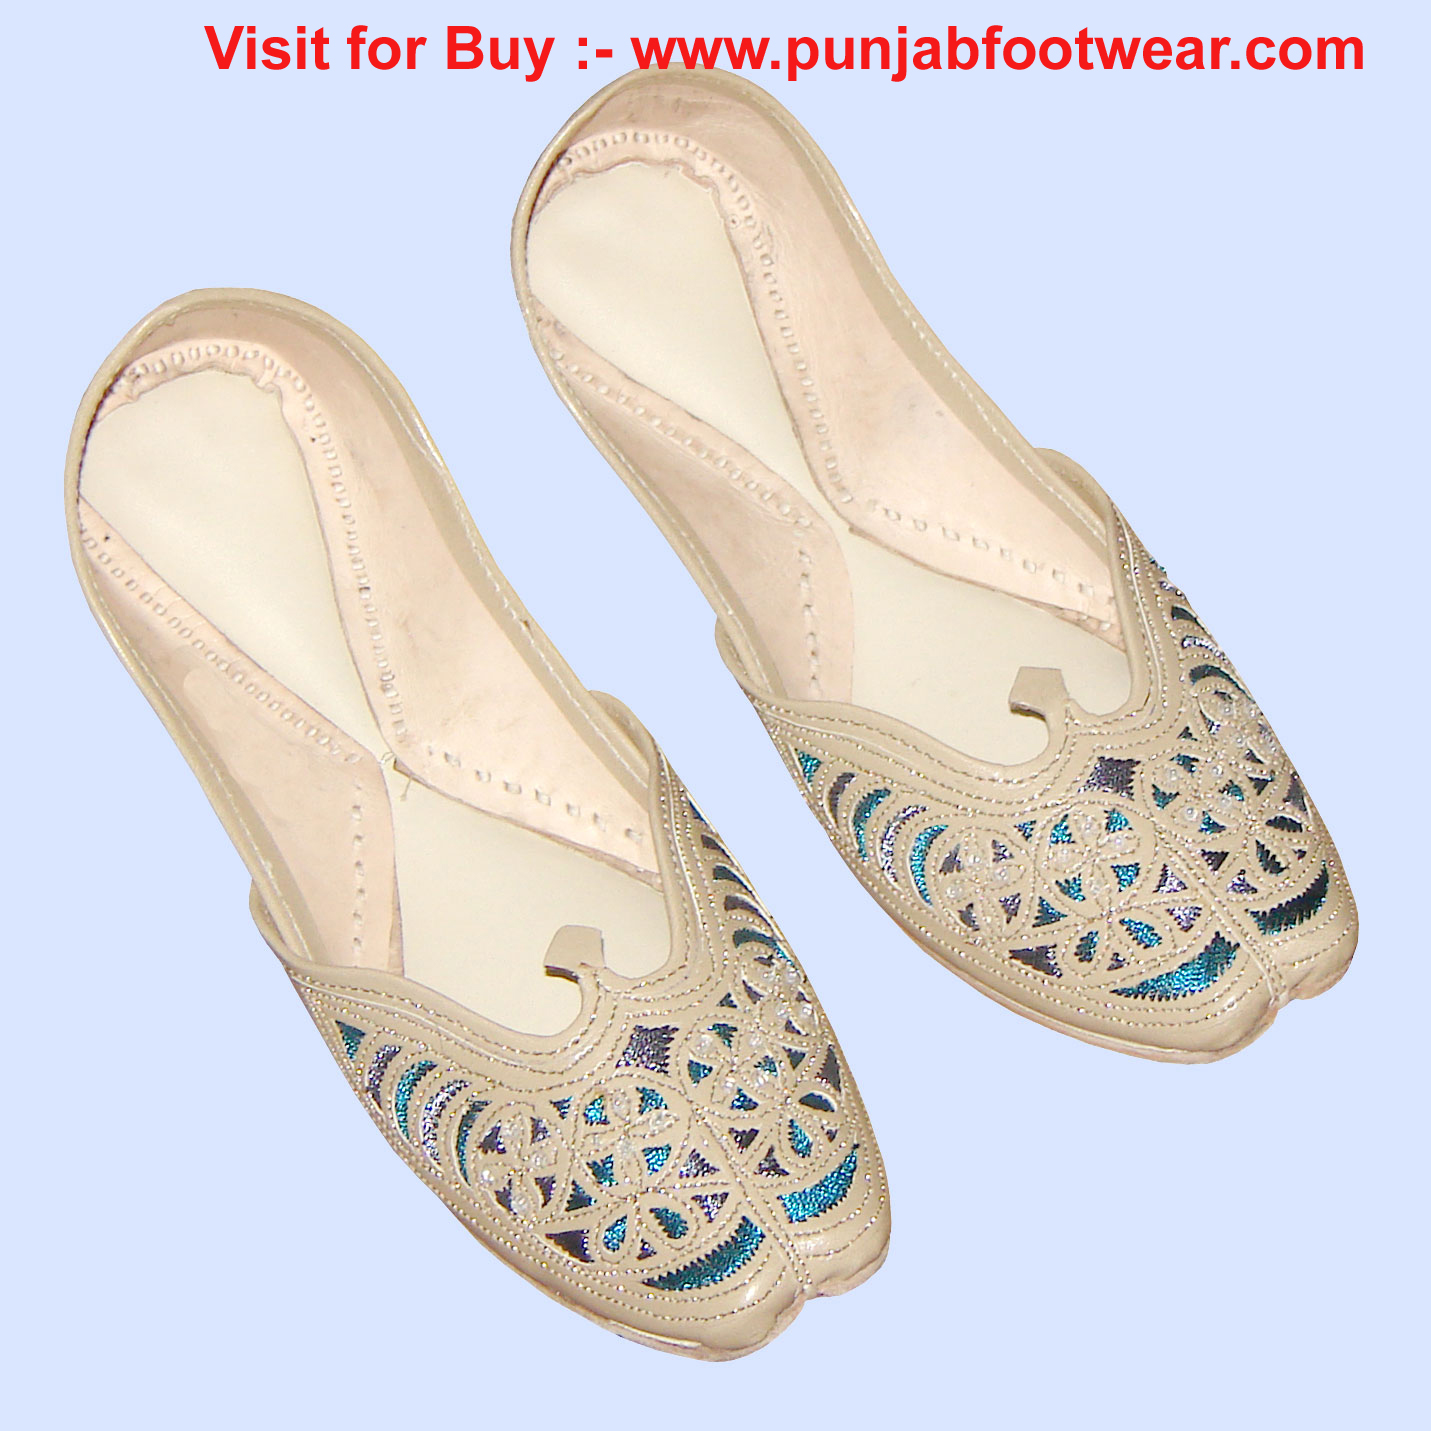 Online shoes shopping in India. Buy branded footwear online and get great deals & discounts. Enjoy free shipping and 24/7 customer service at Tata CLiQ. Online shoes shopping in India. Buy branded footwear online and get great deals & discounts. Women's Wear. Jewellery. Men's Wear. Footwear.